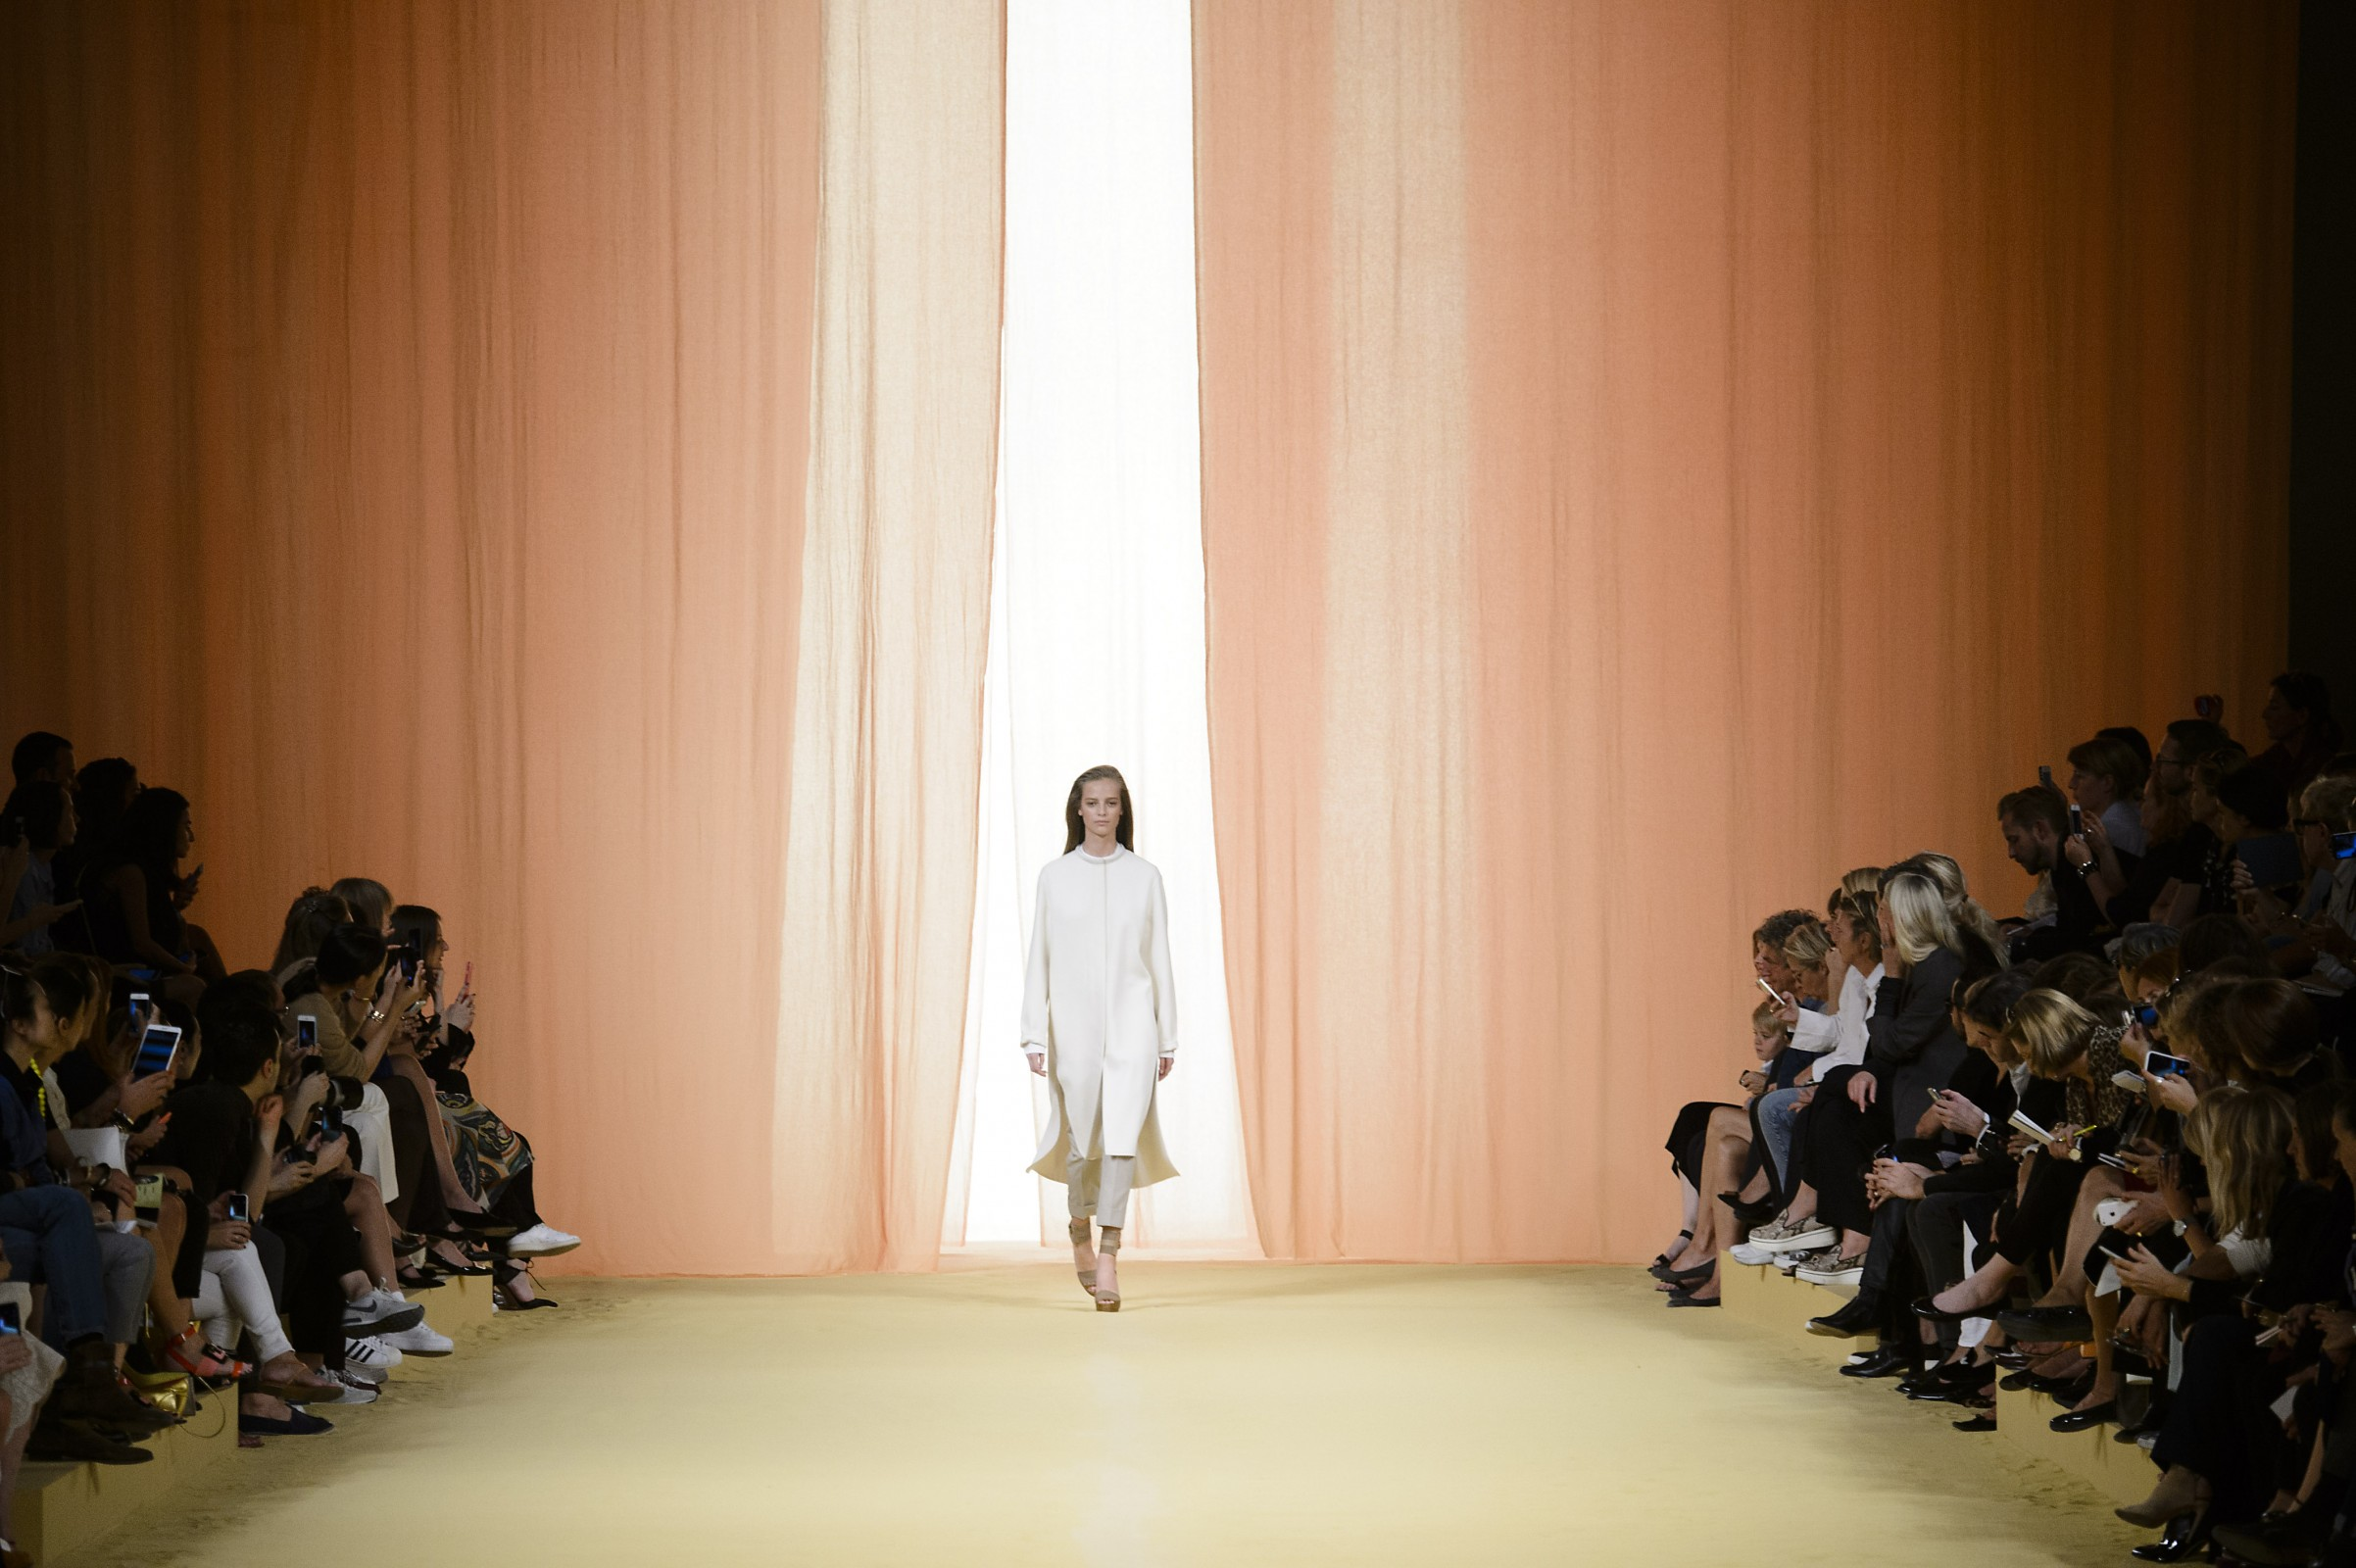 Fashion Week Roundabout: What You Need to Know About AW15